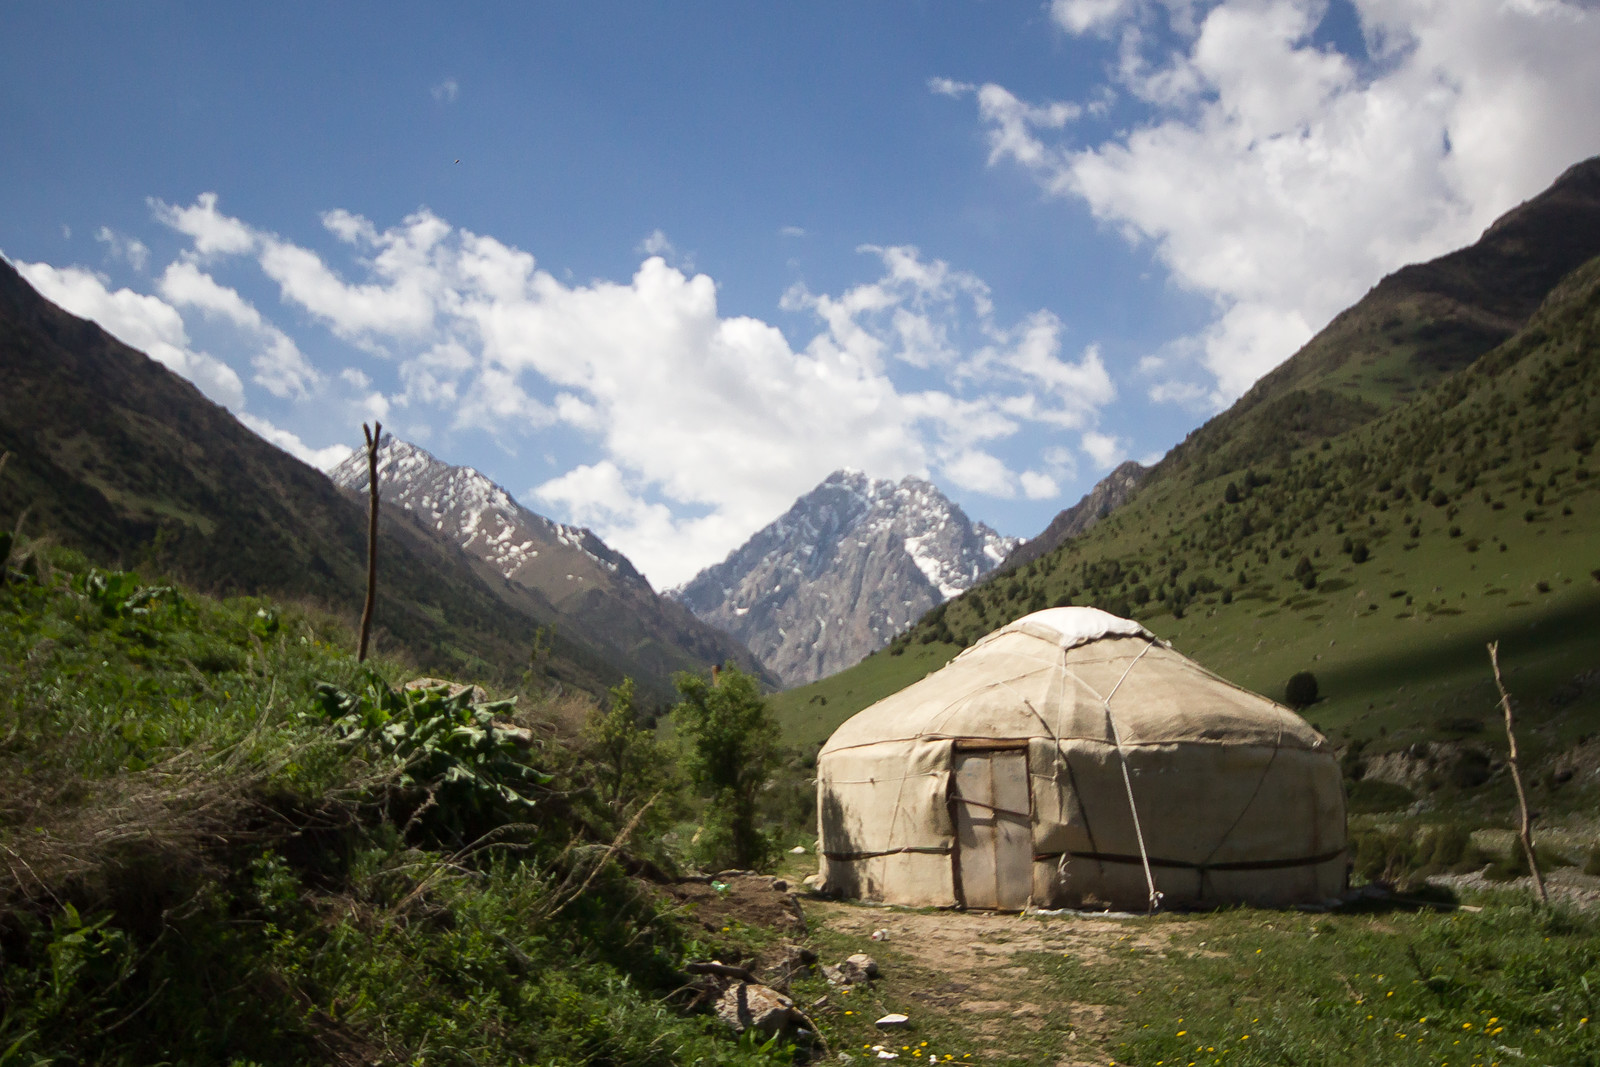 Yurts just feel like THE shot for Kyrgyzstan.